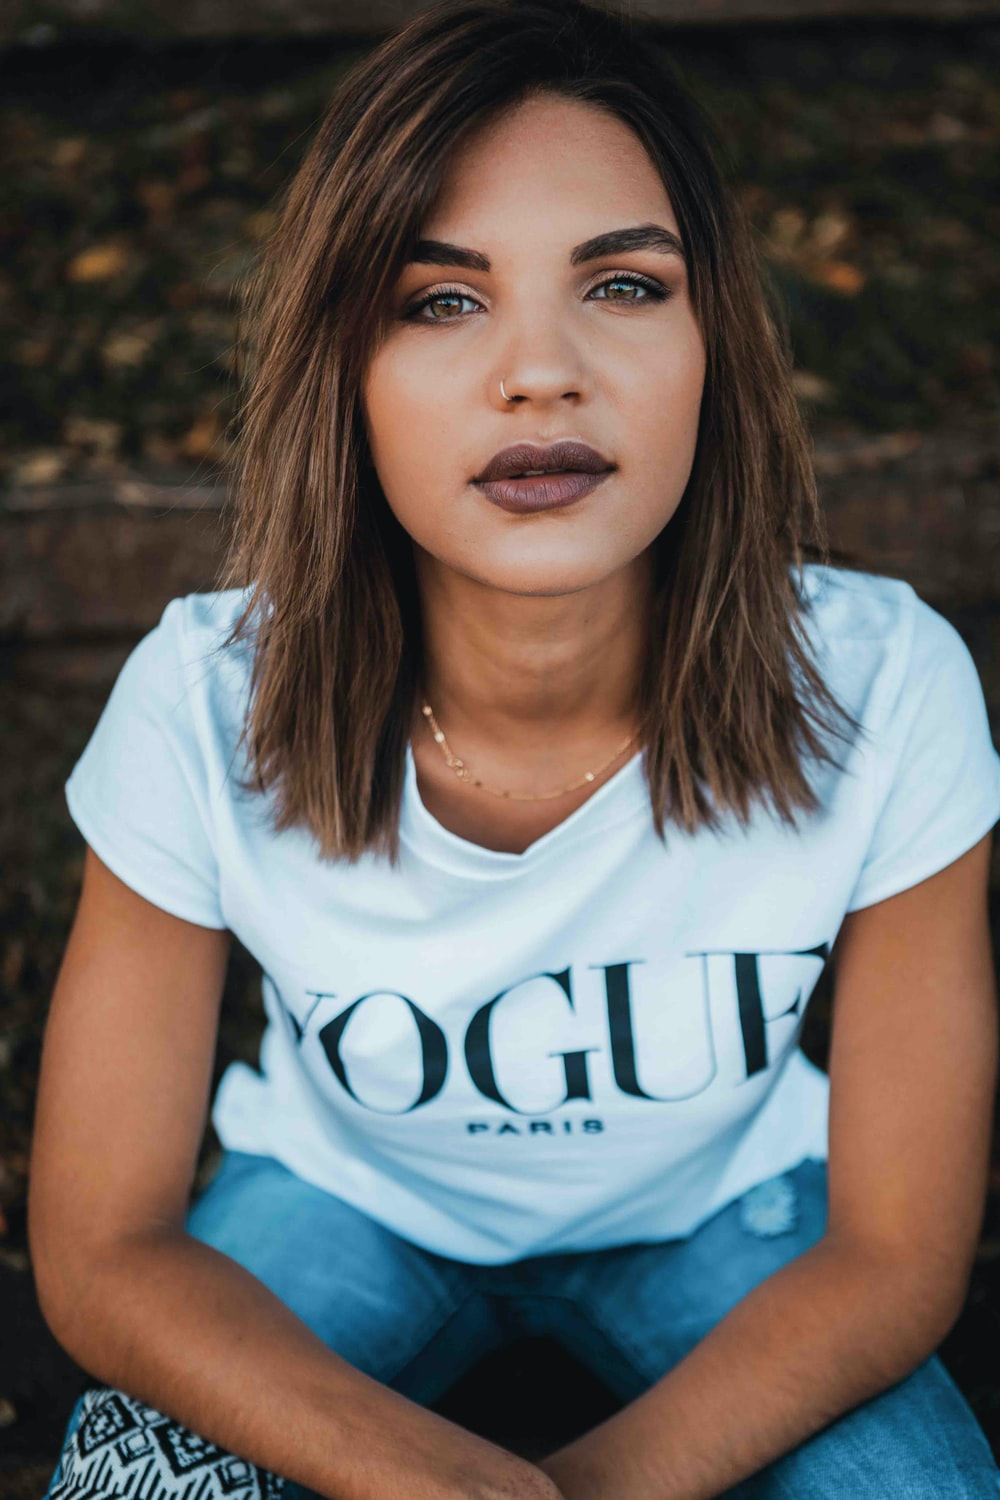 woman in white Vogue t-shirt and blue jeans